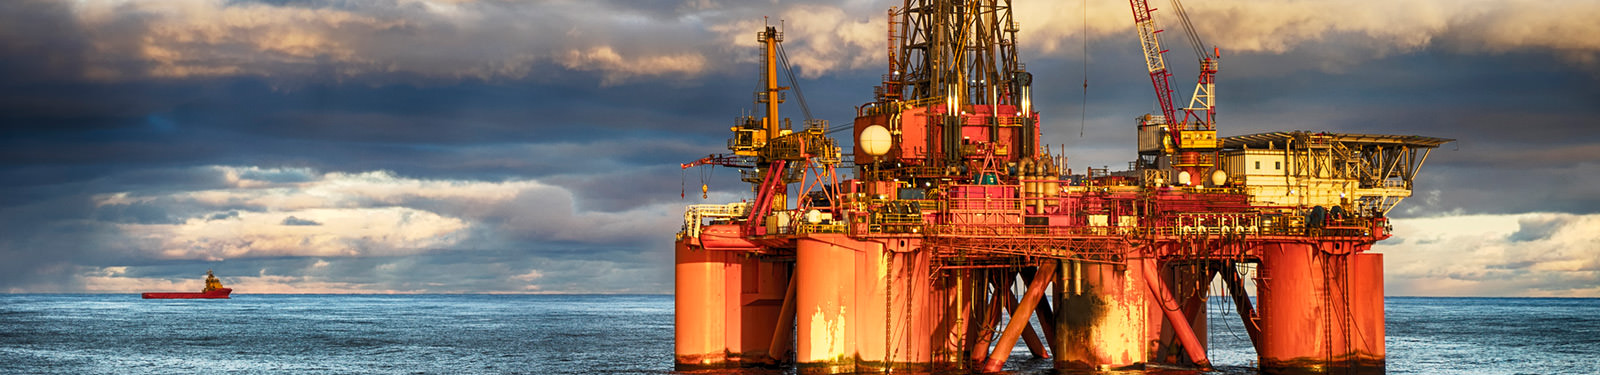 Offshore Oil & Gas Production